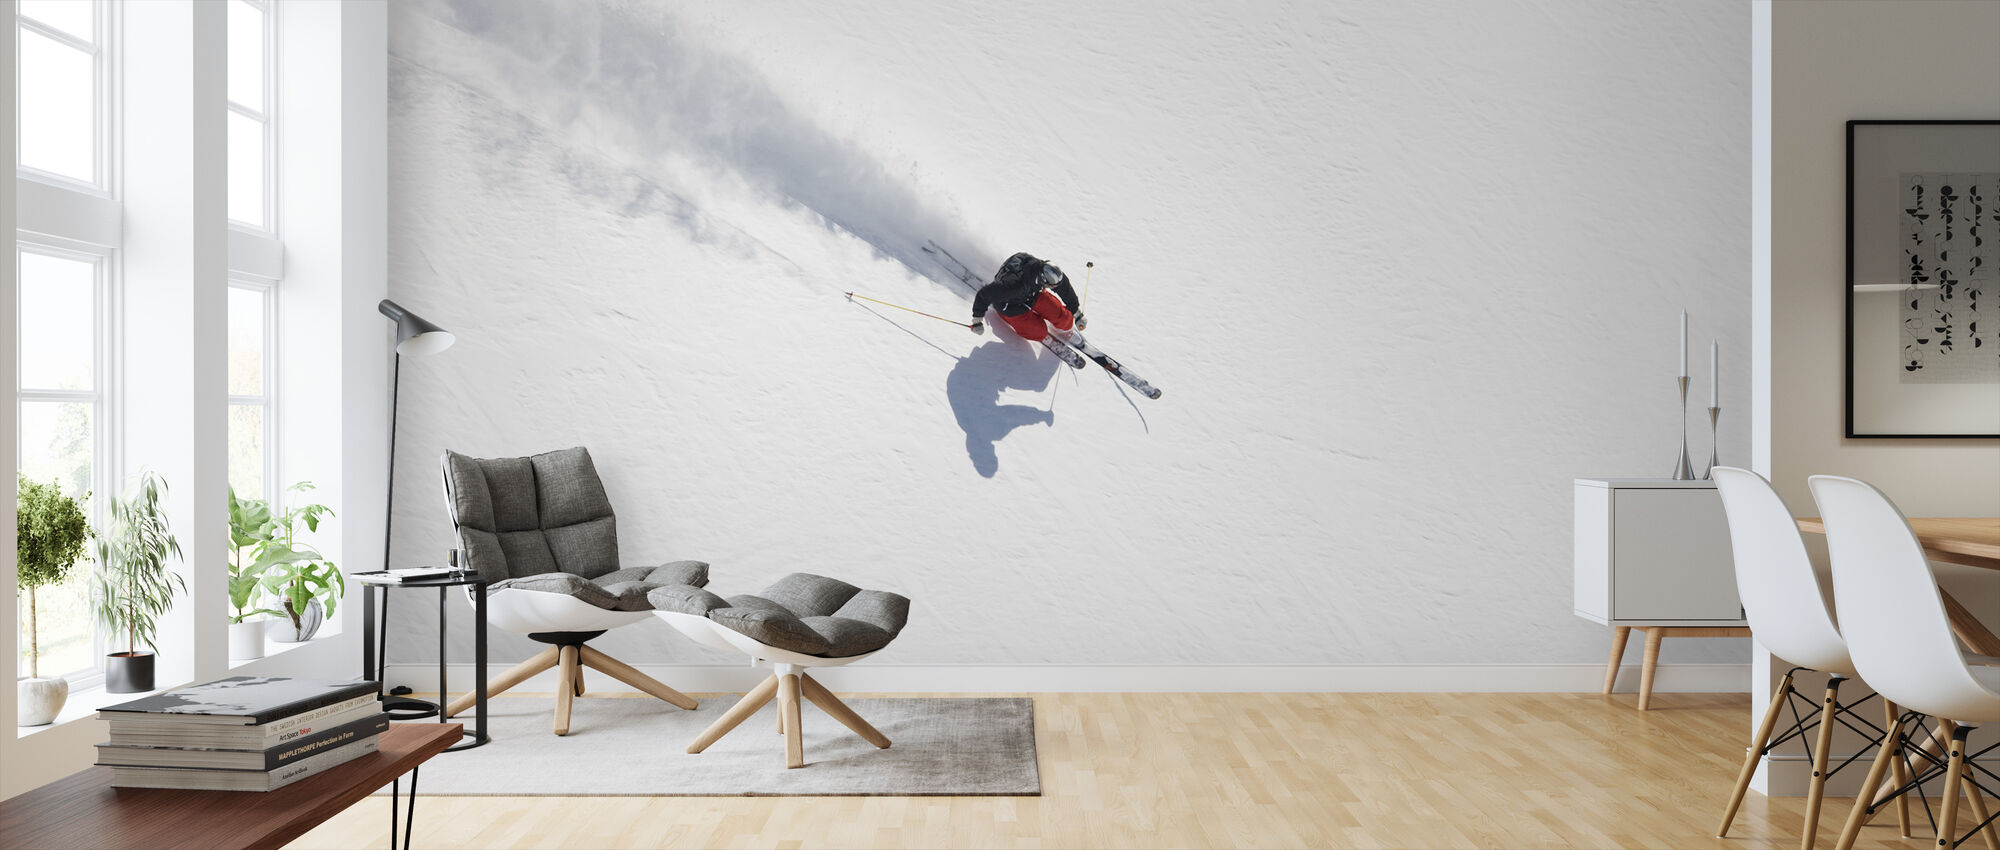 Skiing in Chamonix, France, Europe - Wallpaper - Living Room